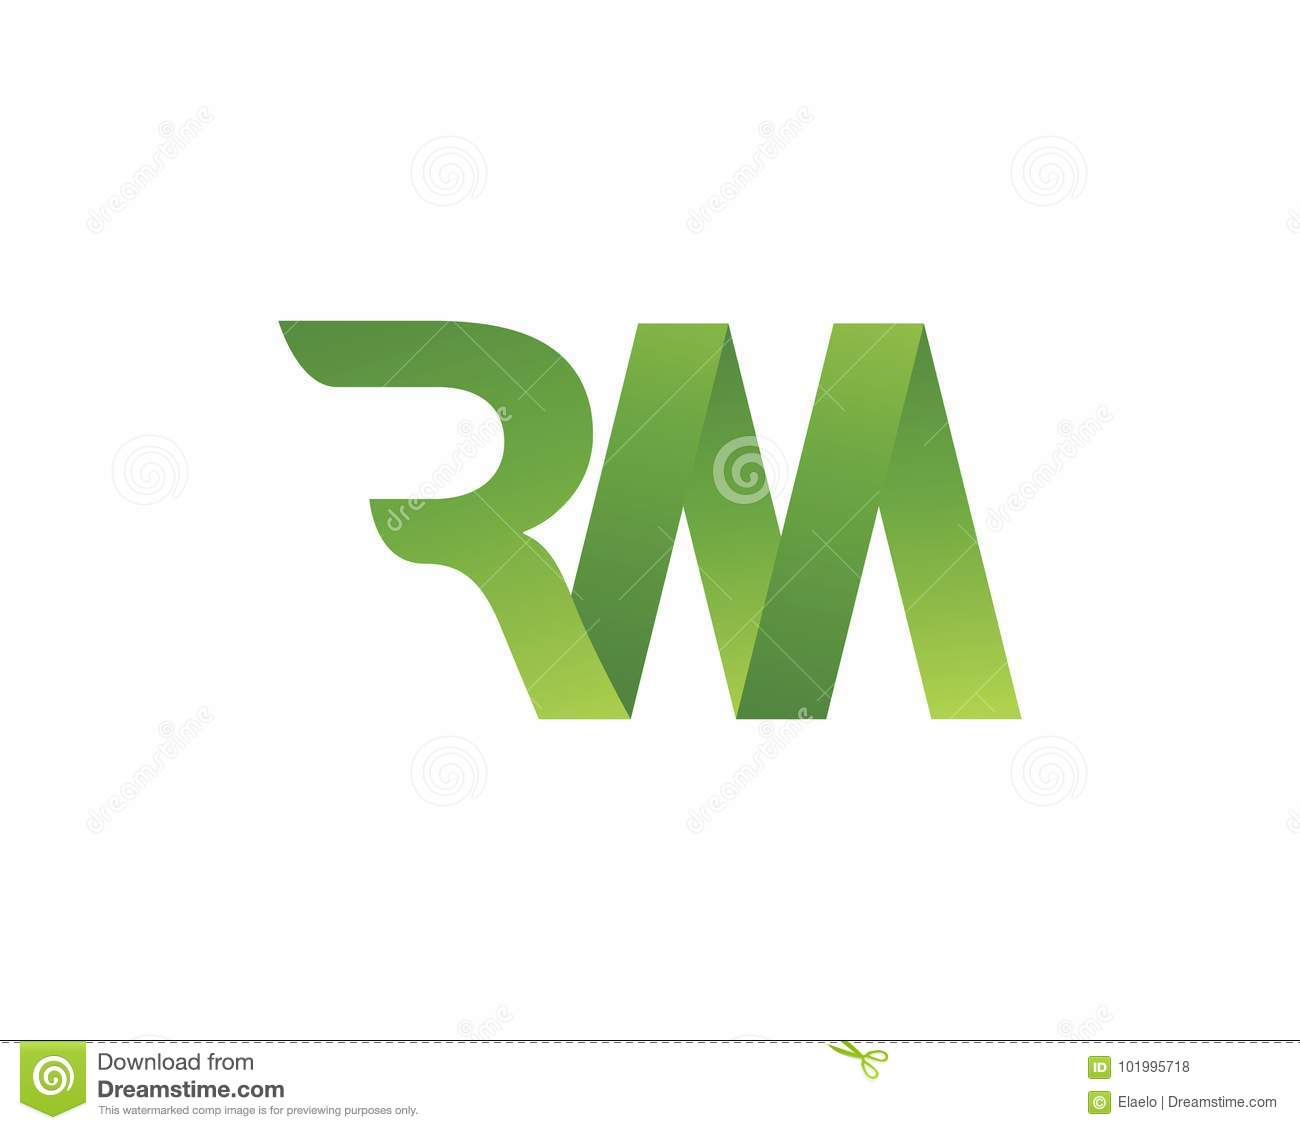 rm logo stock illustrations 419 rm logo stock illustrations vectors clipart dreamstime https www dreamstime com rm letter logo business template vector icon rm letter logo image101995718